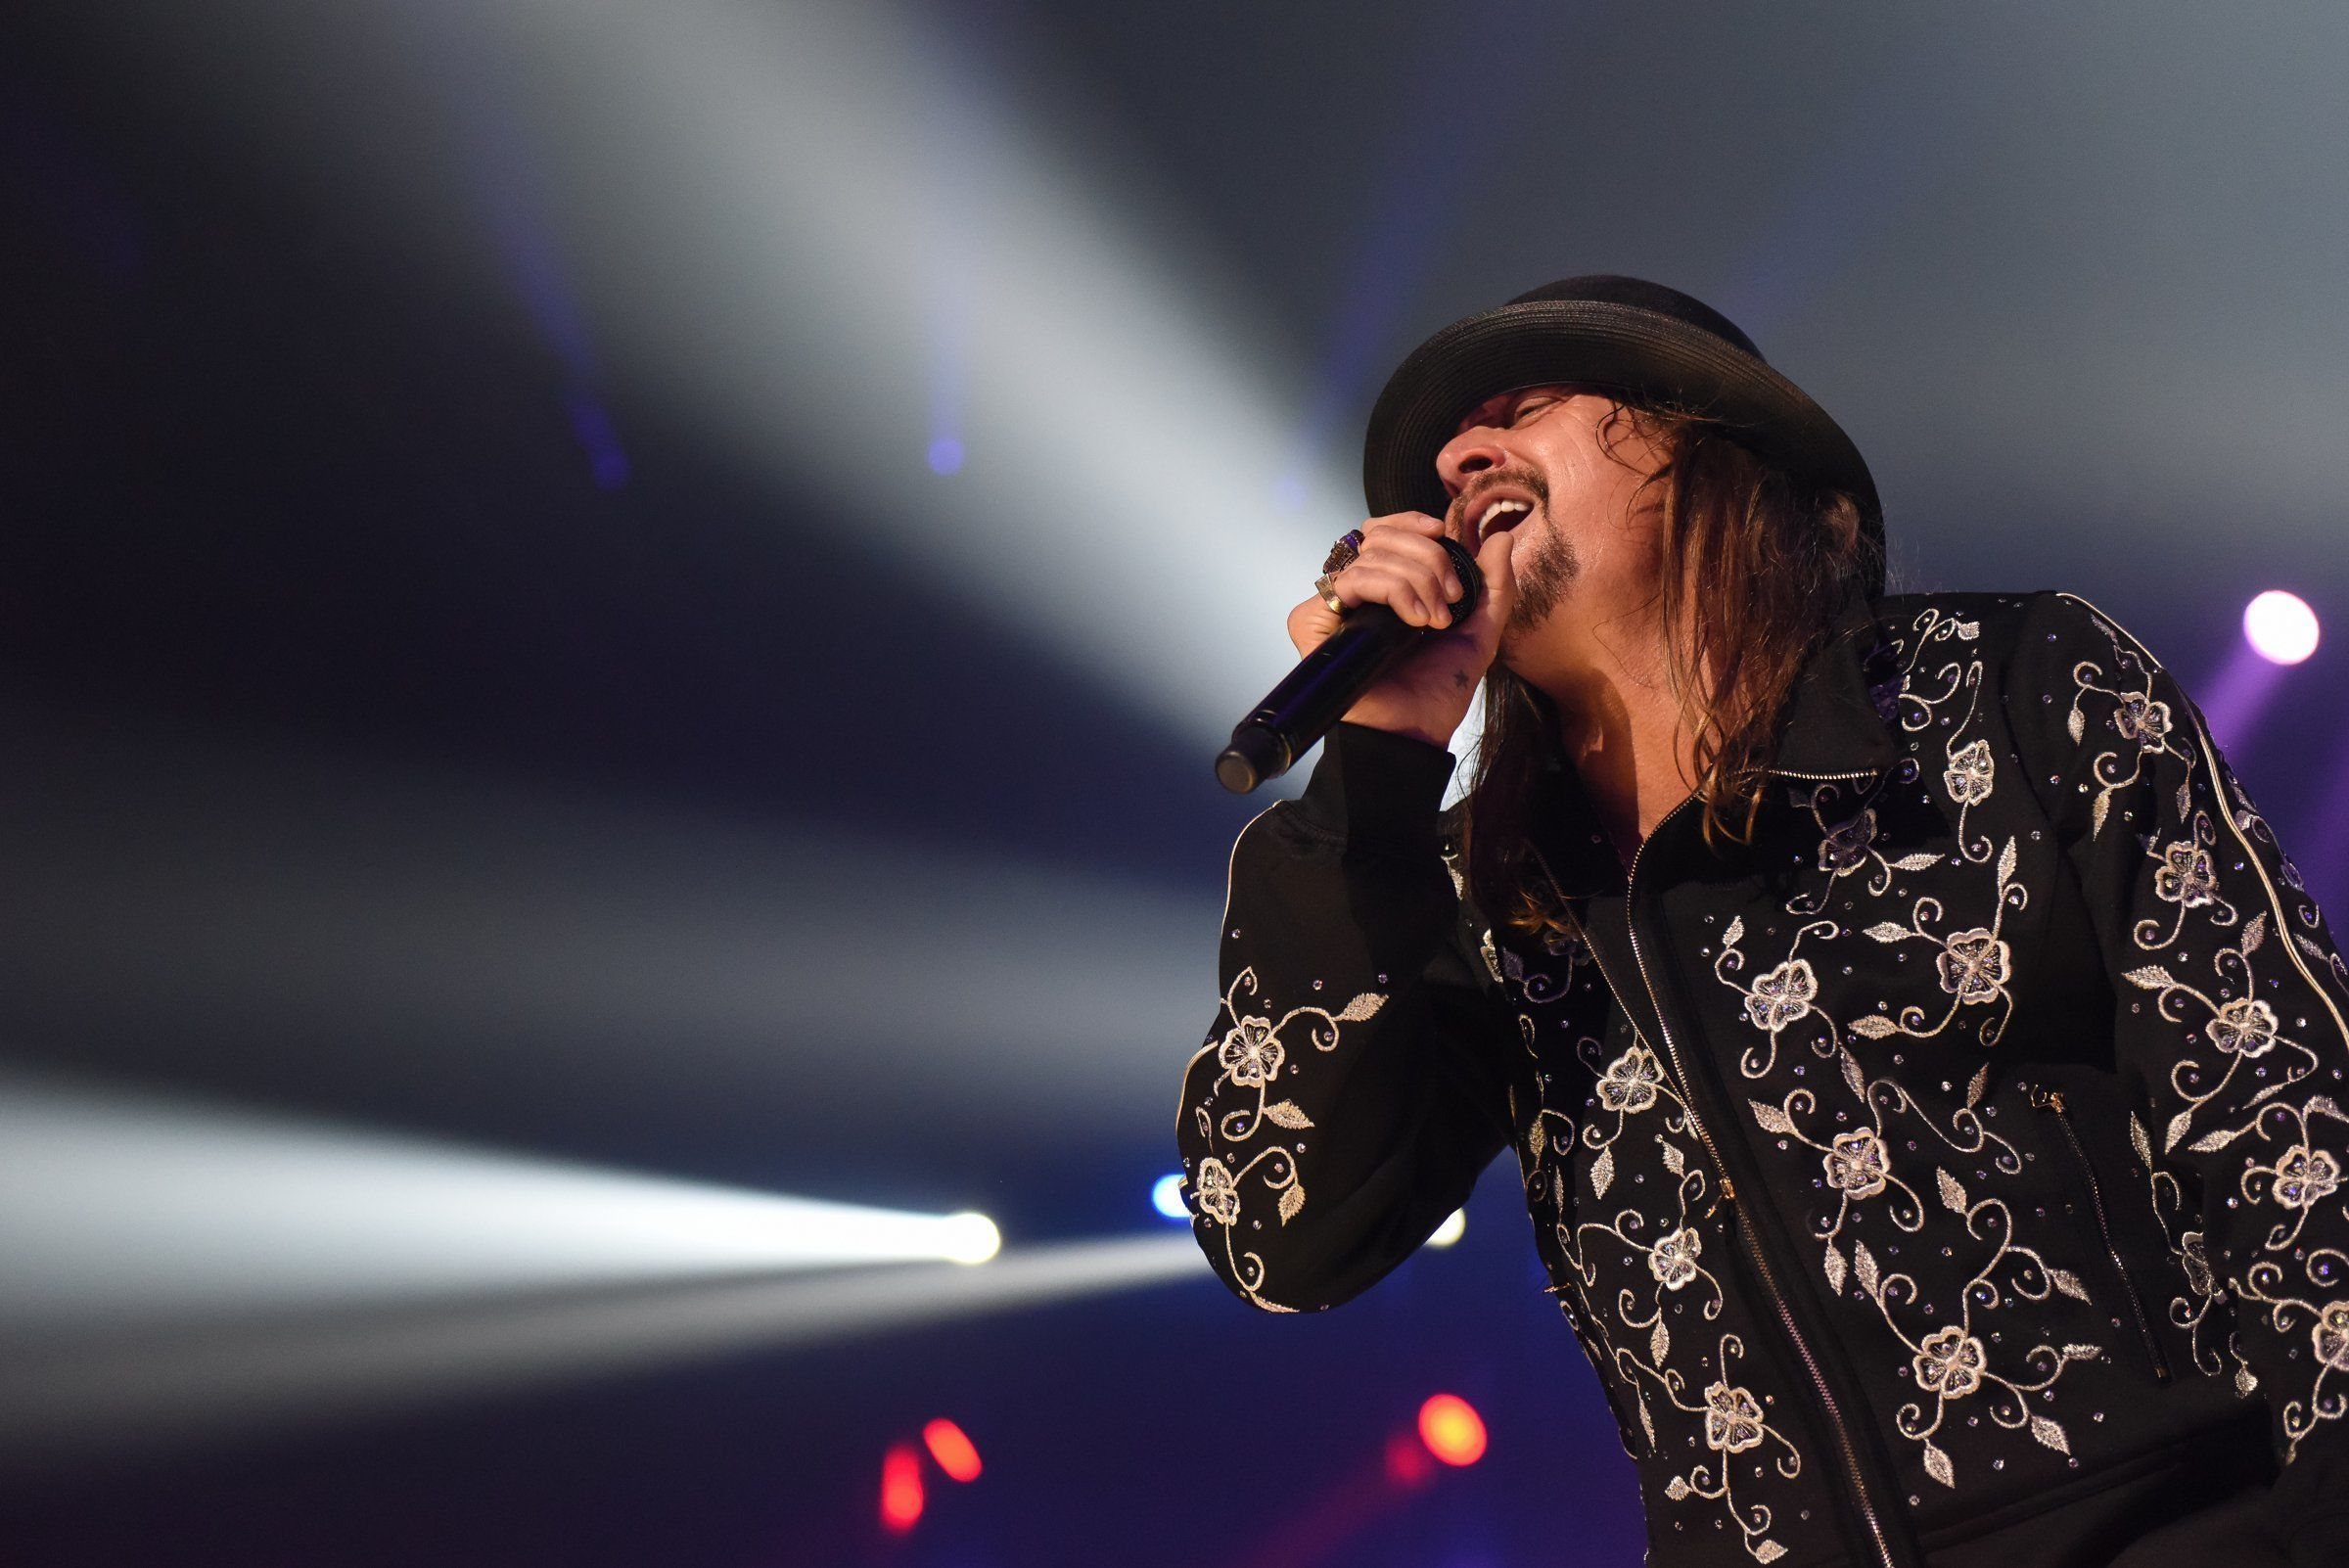 Kid Rock performing at Little Caesars Arena in Detroit on Sept. 12, 2017. His shows marking the opening of LCA are his most recent in metro Detroit.